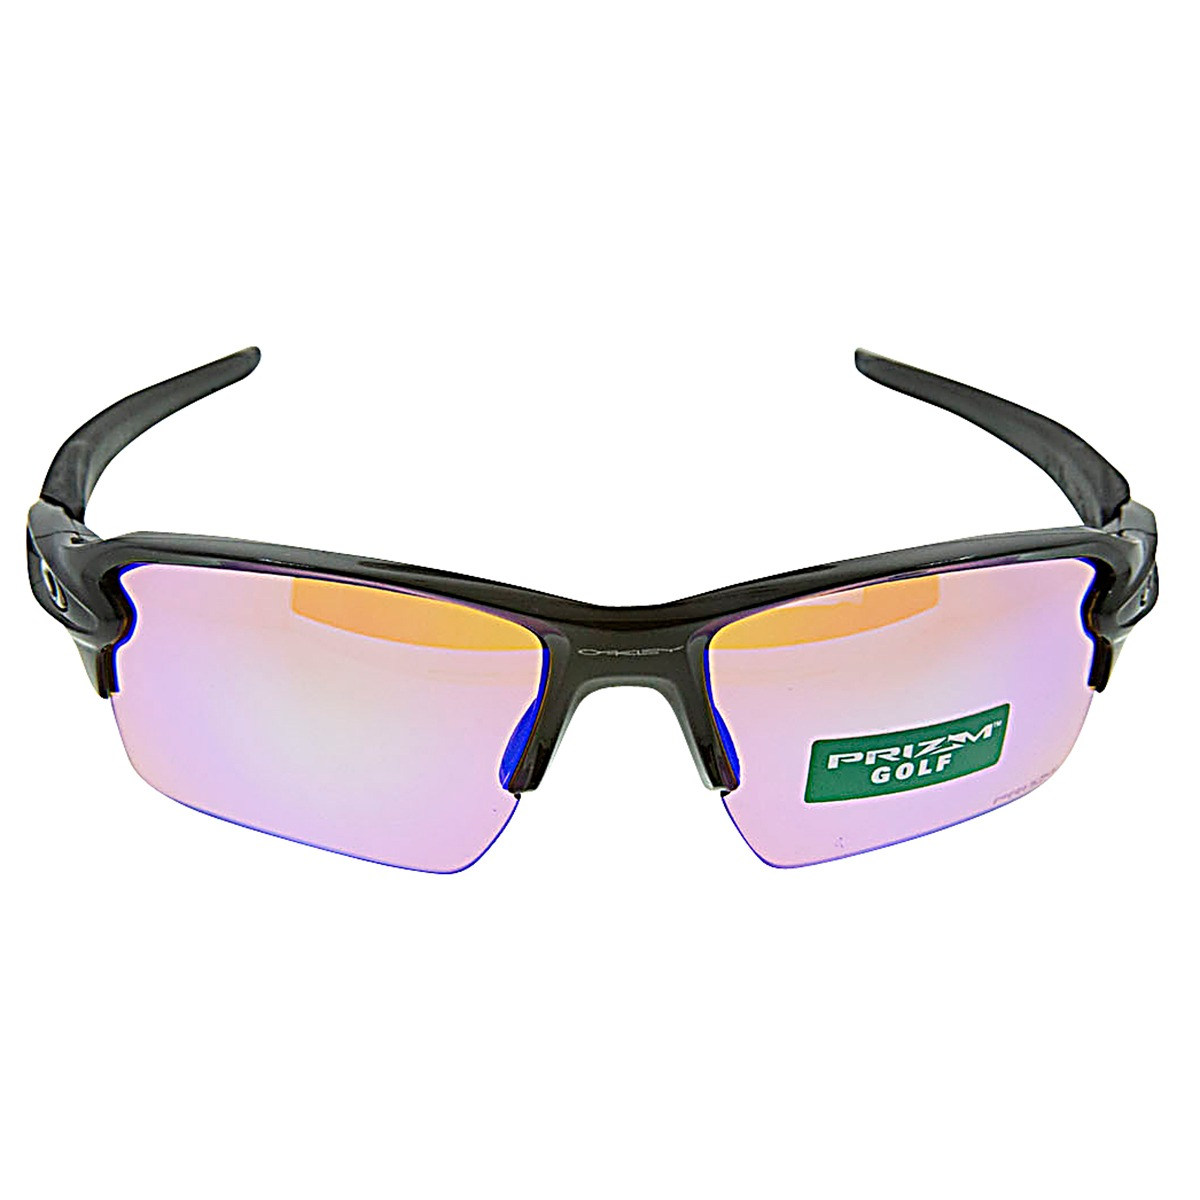 7448e464c96 Details about New Authentic Oakley Flak 2.0 XL Sunglasses Polished Black  with Prizm Golf Lens